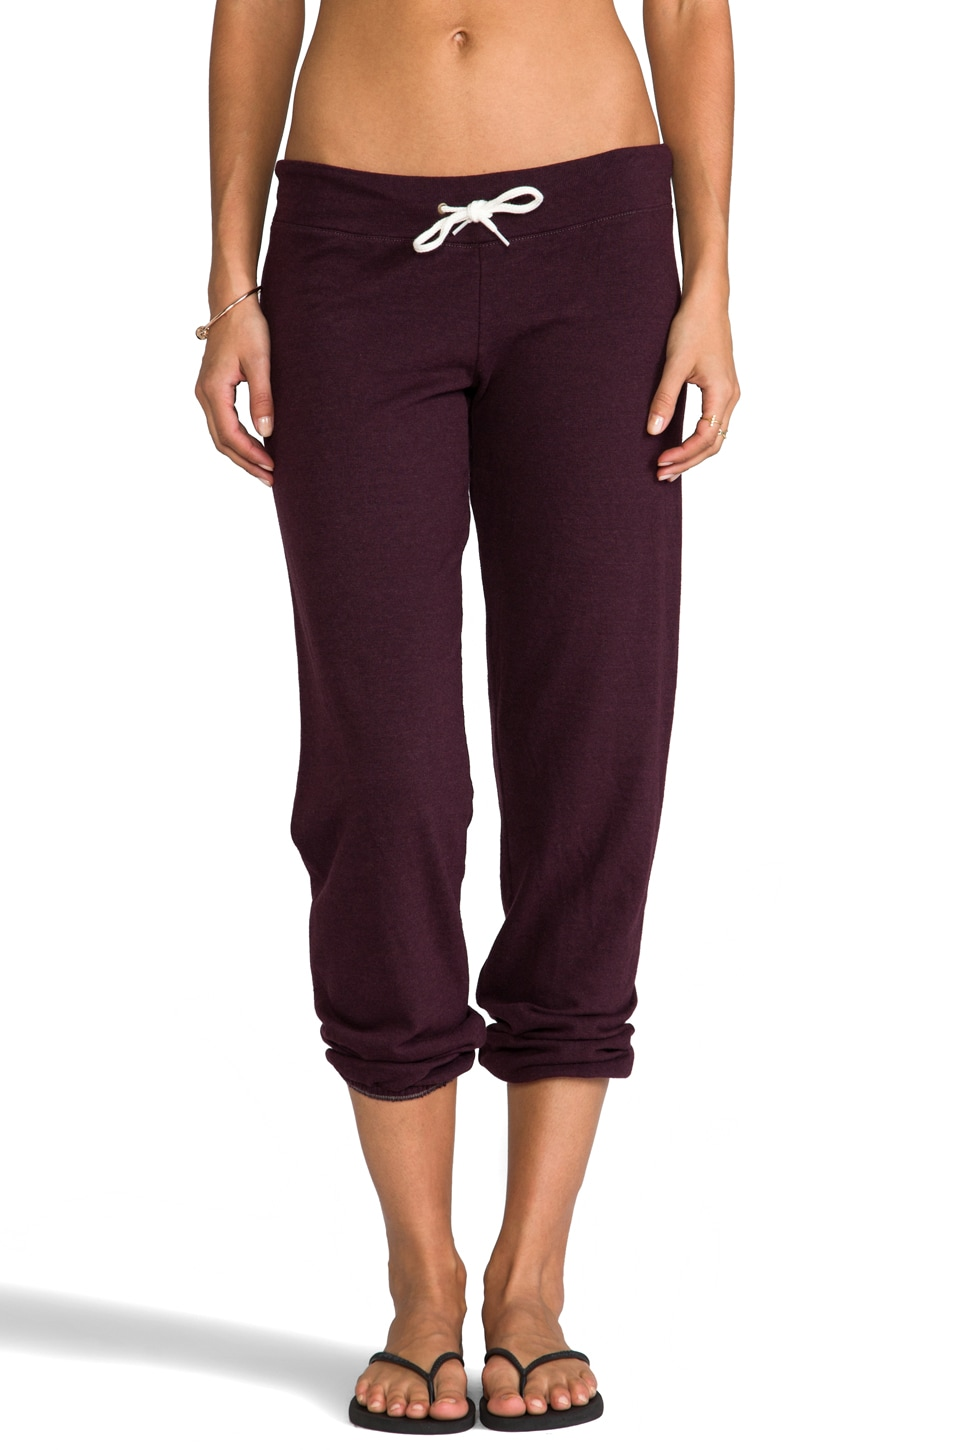 MONROW Heather Fleece Vintage Sweats in Vamp